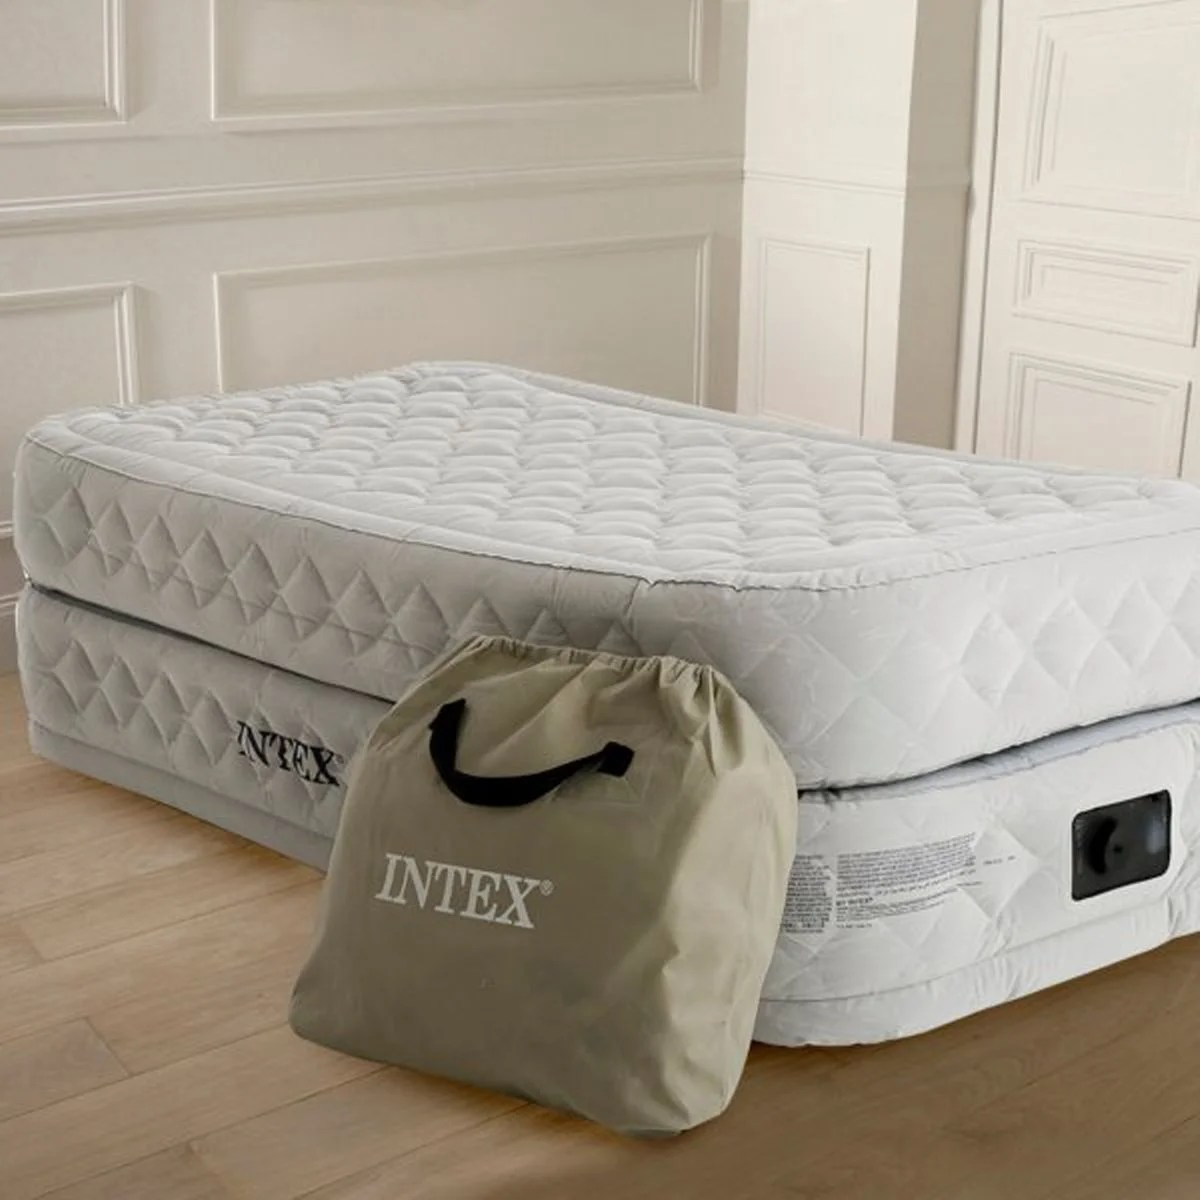 Lit Gonflable électrique Intex Premaire Dream Support 2 Personnes Lit Gonflable Junior Readybed